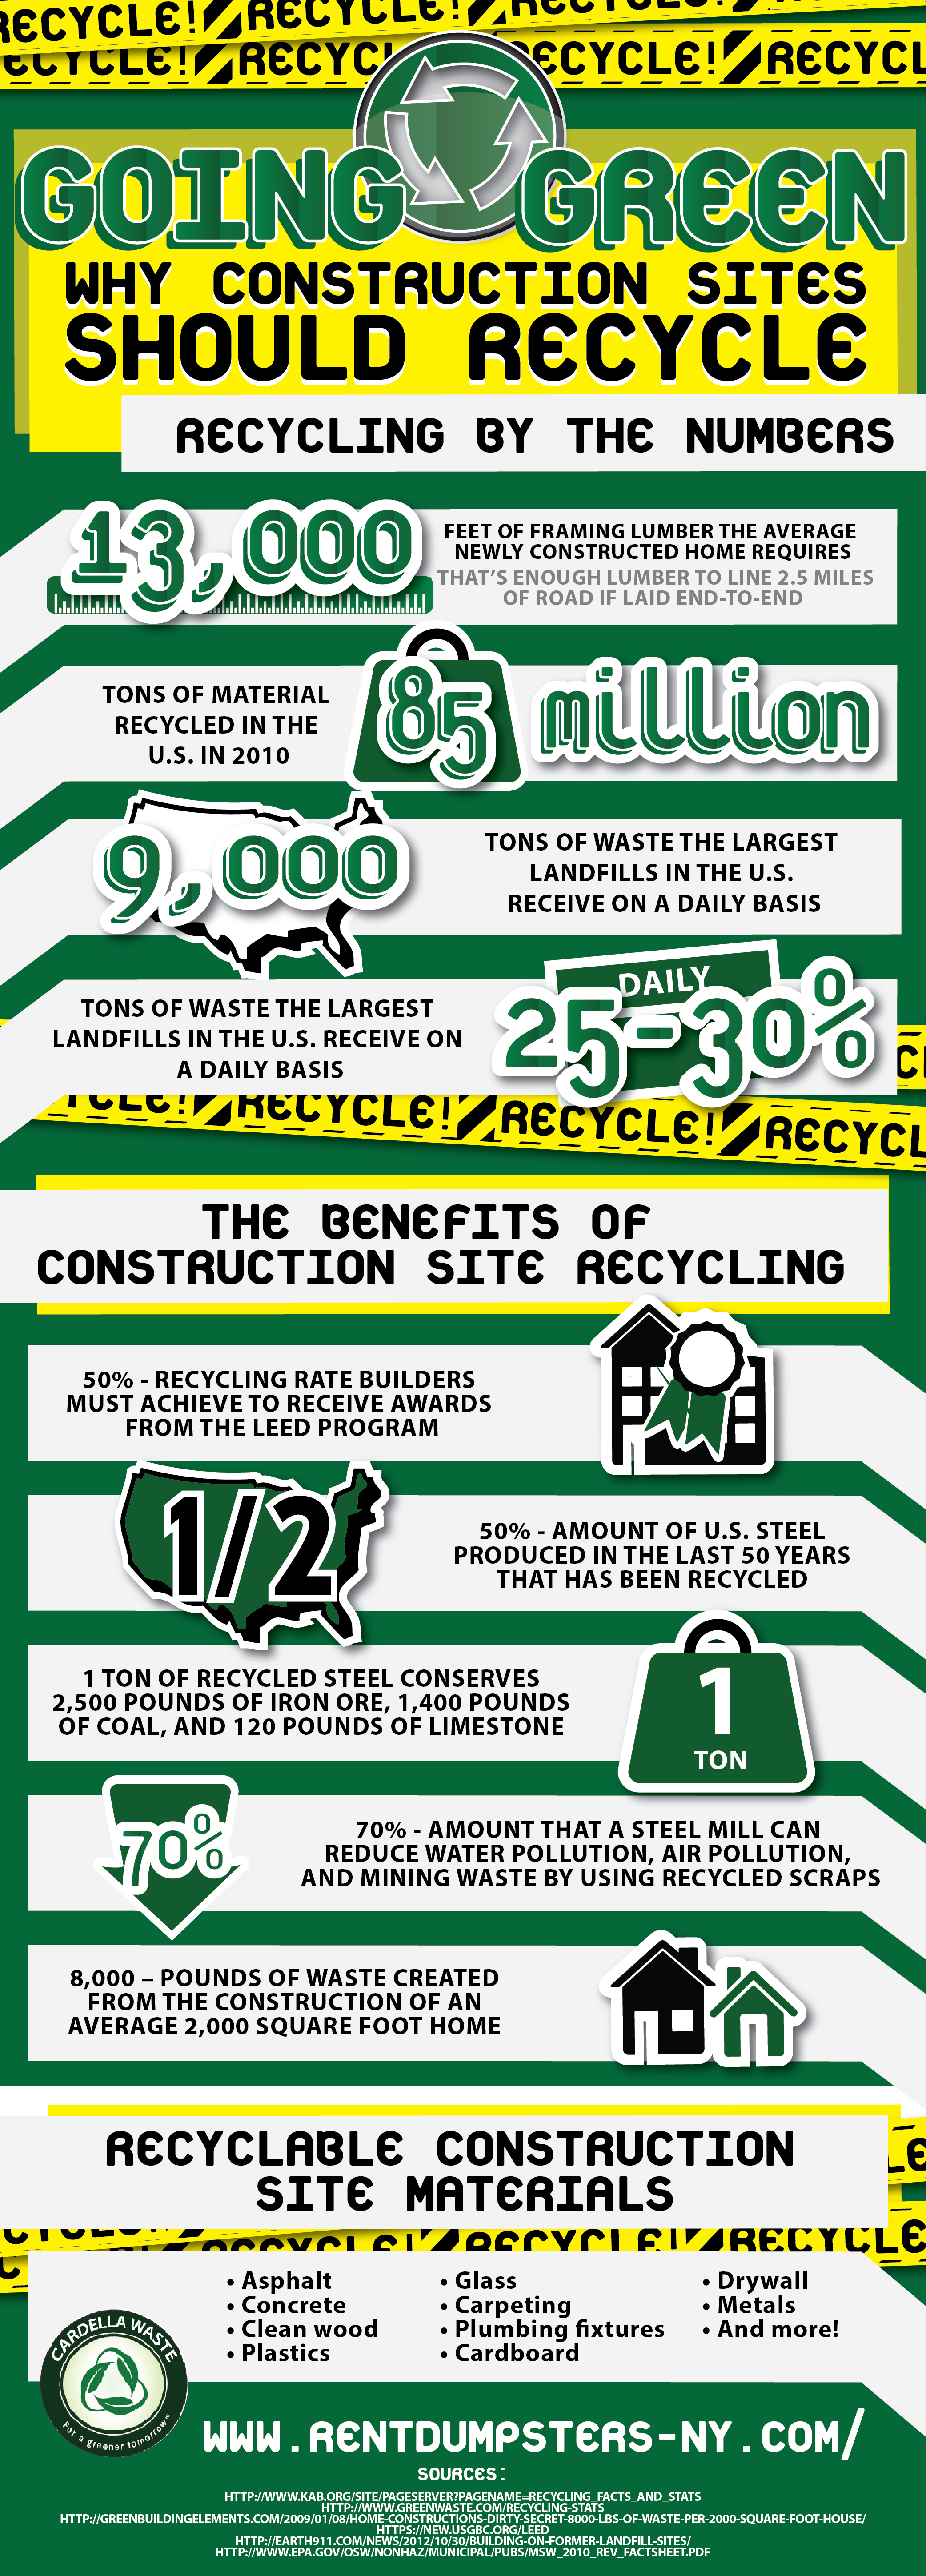 Going Green: Why Construction Sites Should Recycle